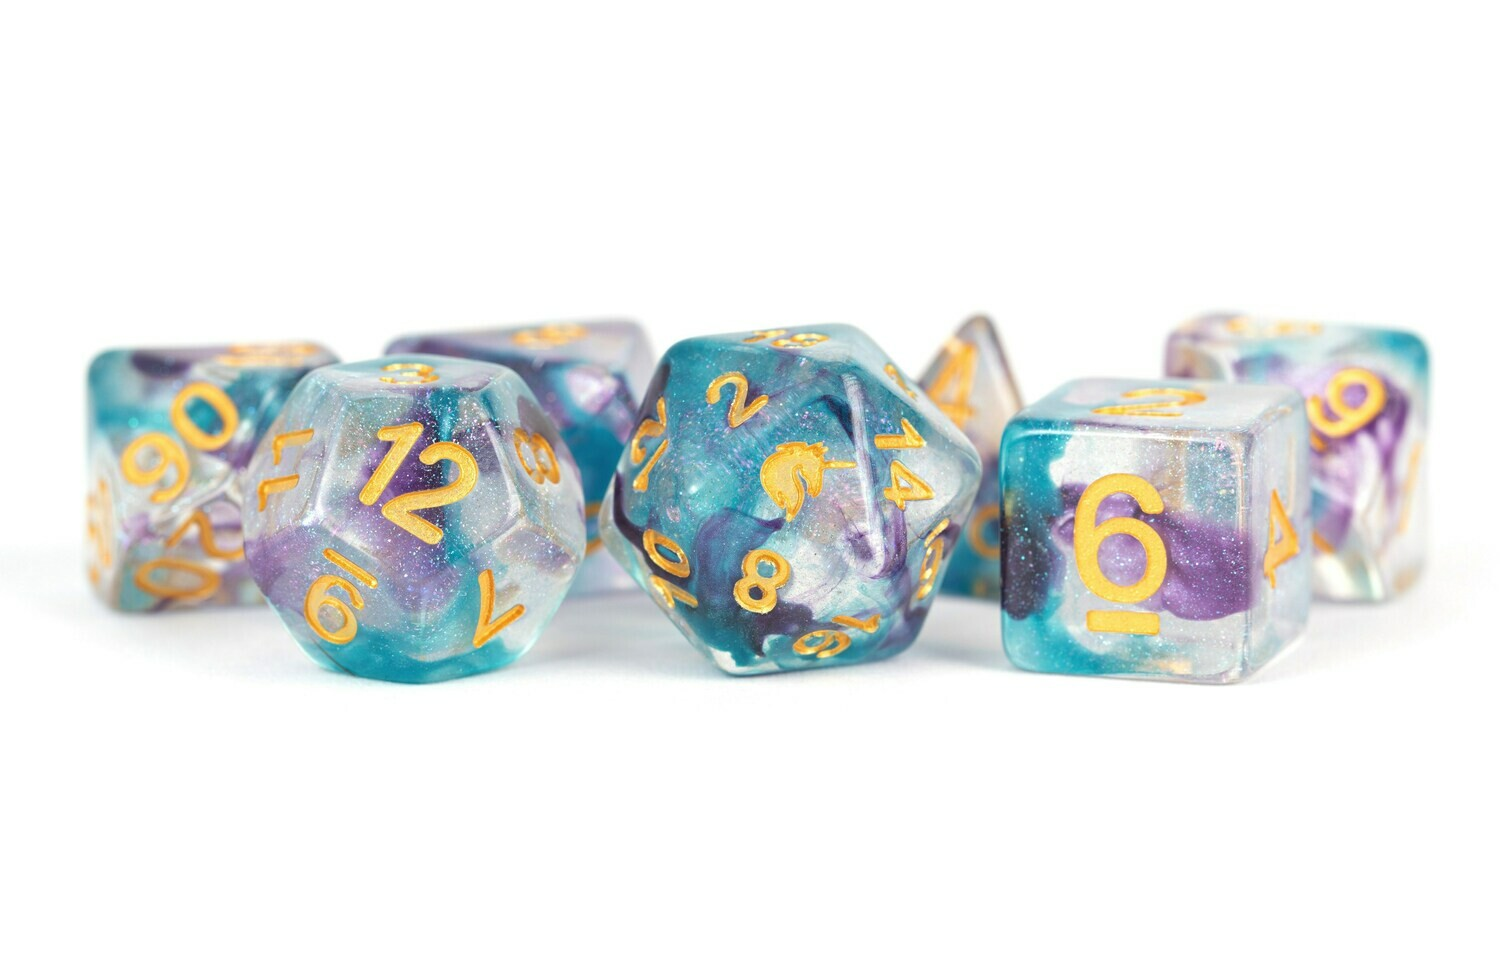 Unicorn Fancy Fae 6mm Poly Dice Set Tabletop RPG Gameing Roleplay